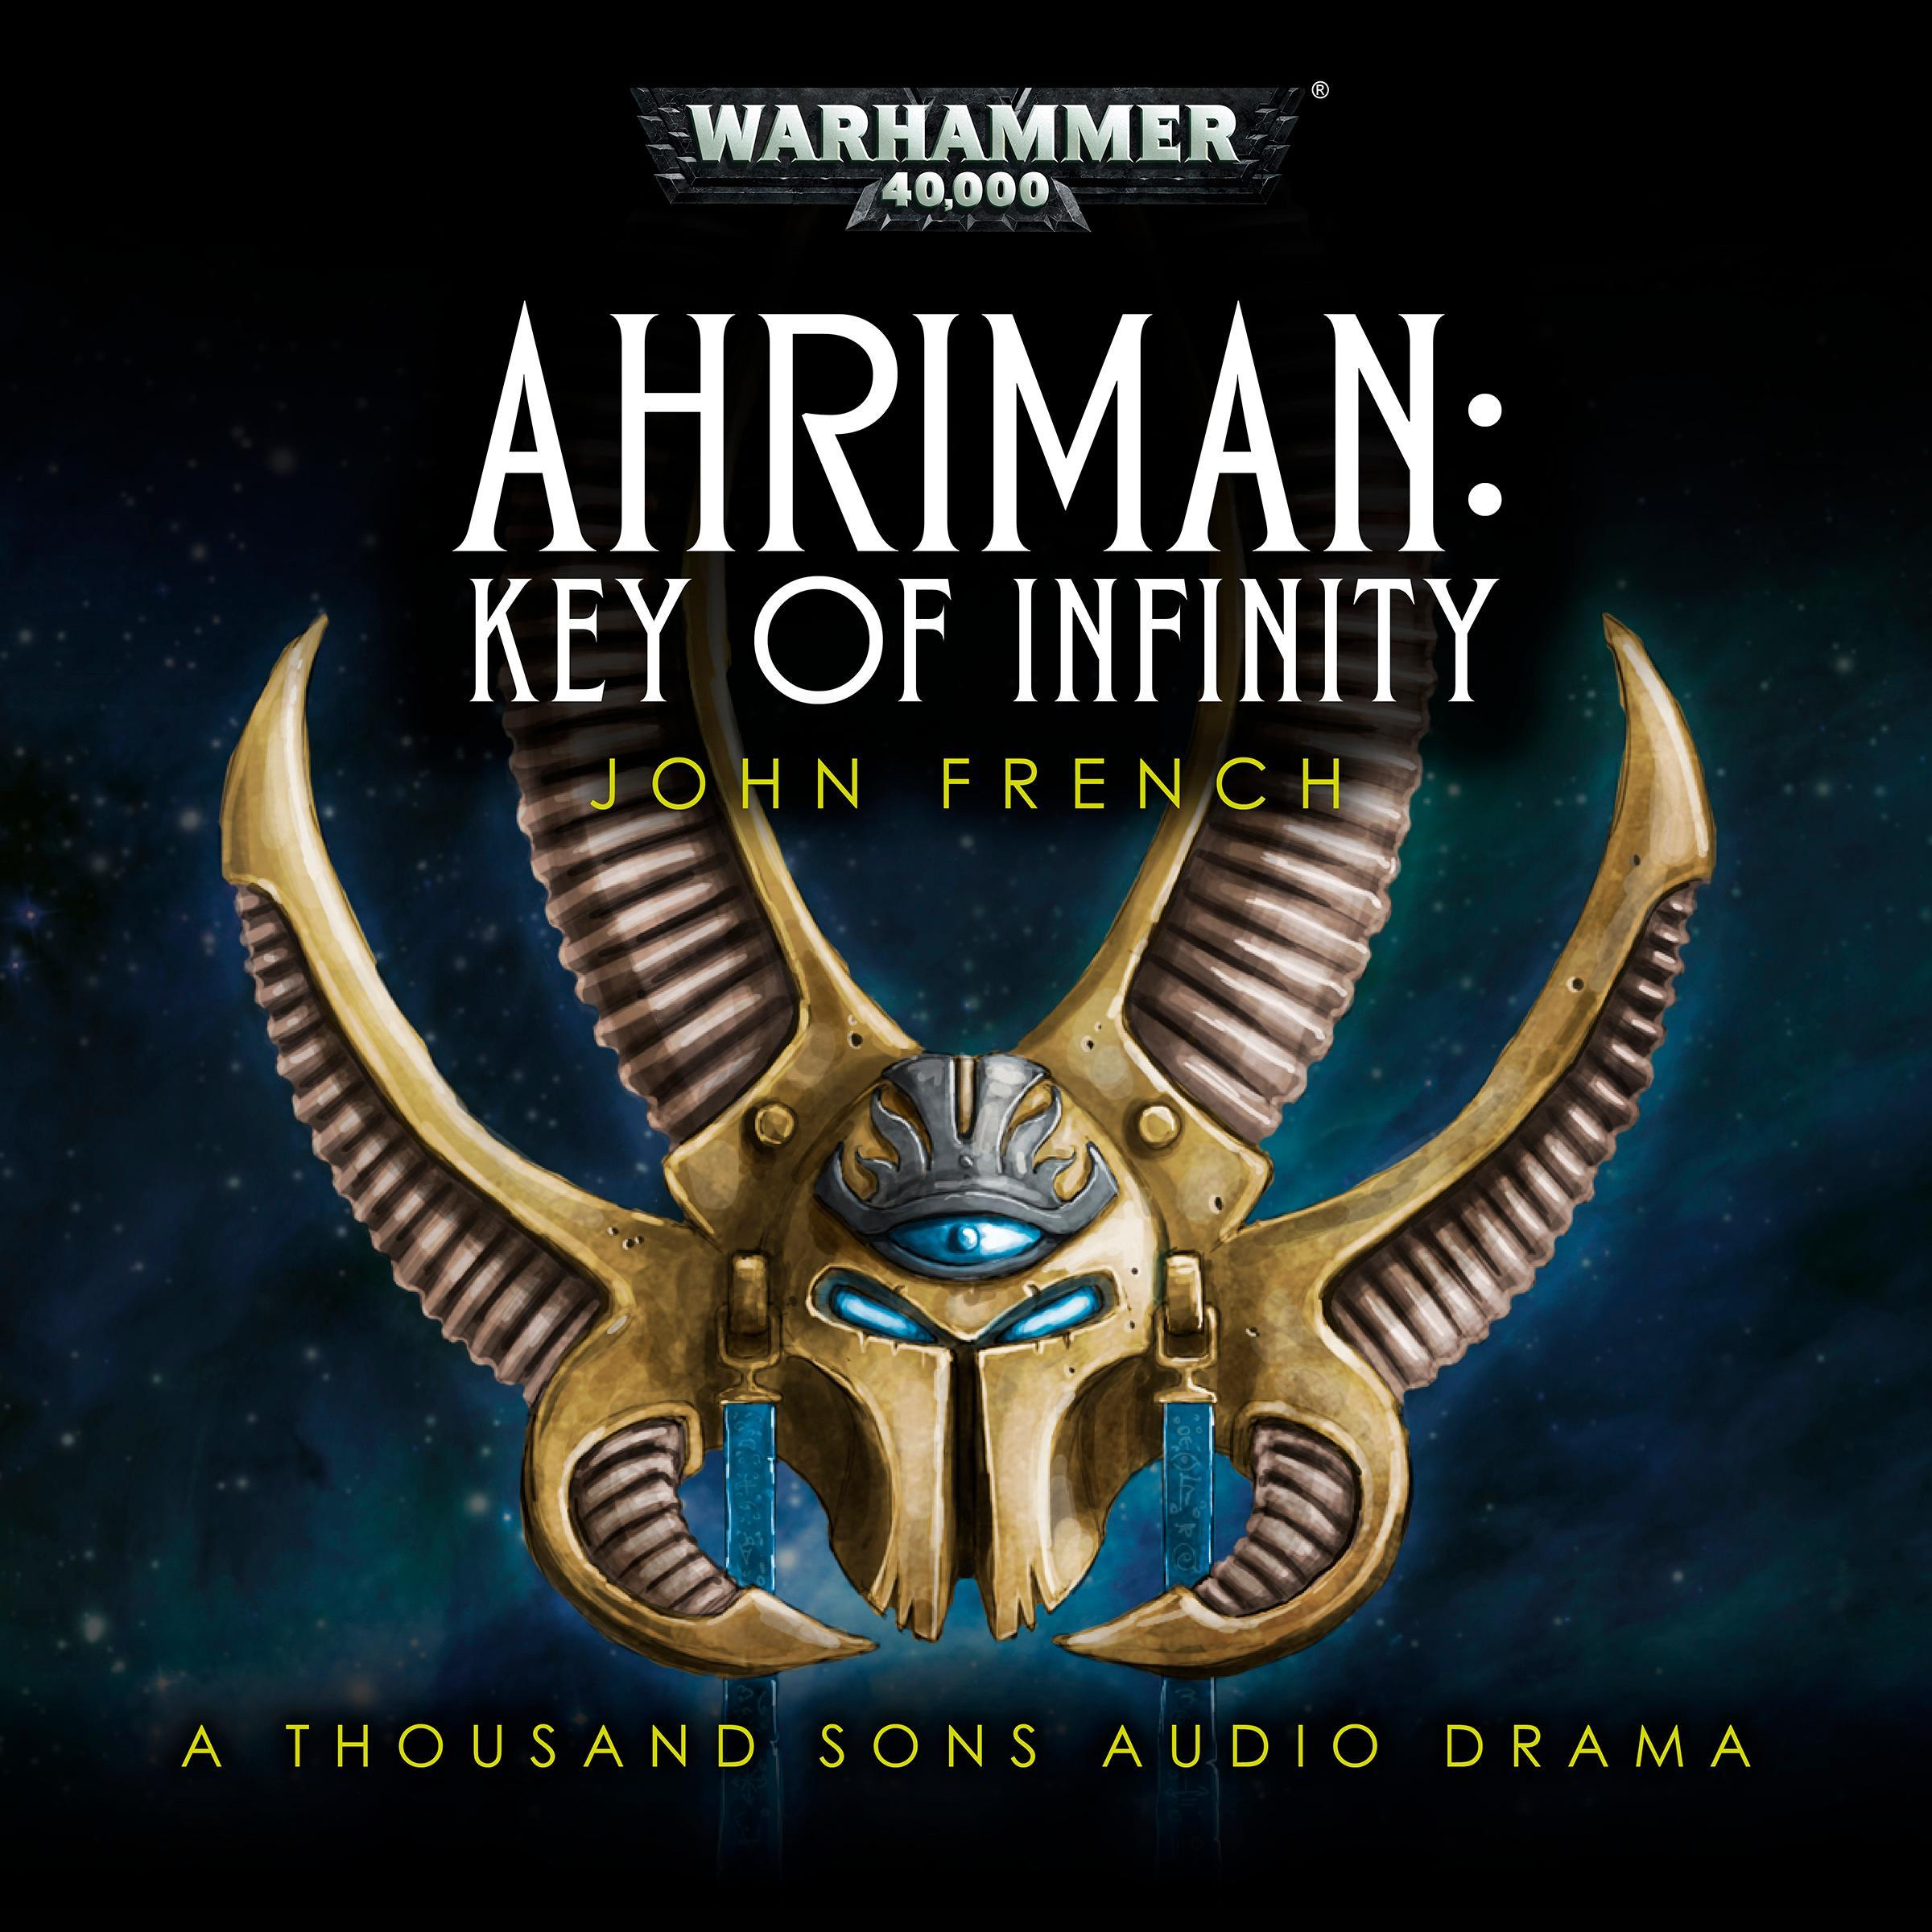 Ahriman: Key of Infinity by John French